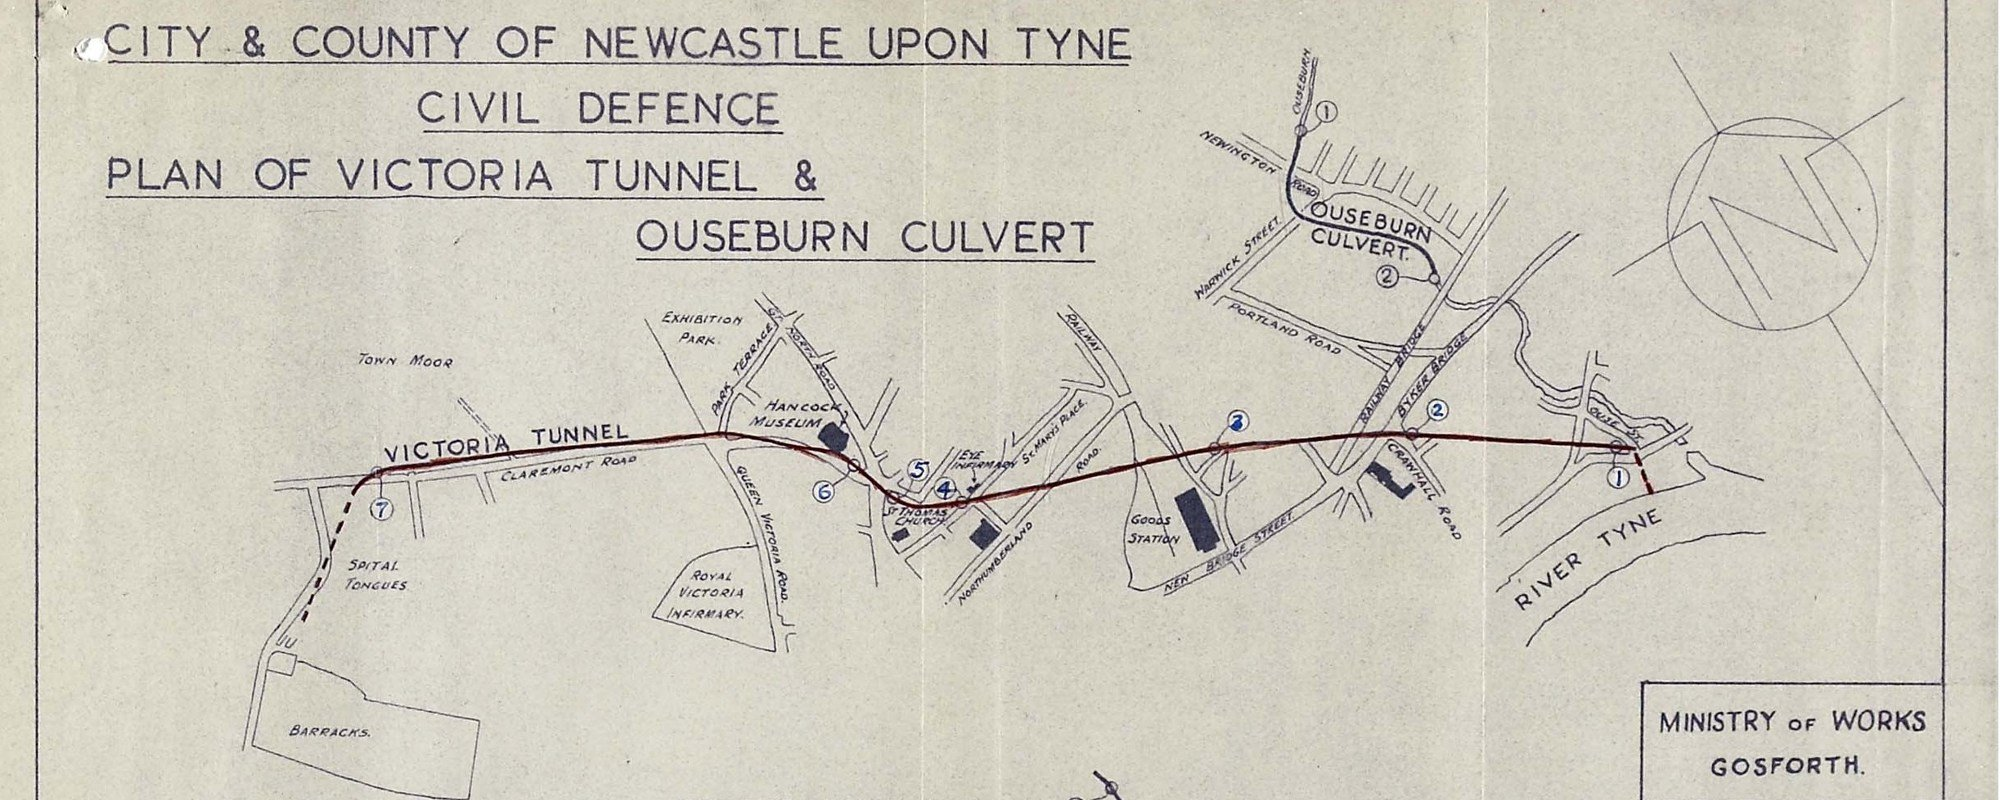 El Túnel de Victoria en Newcastle upon Tyne.